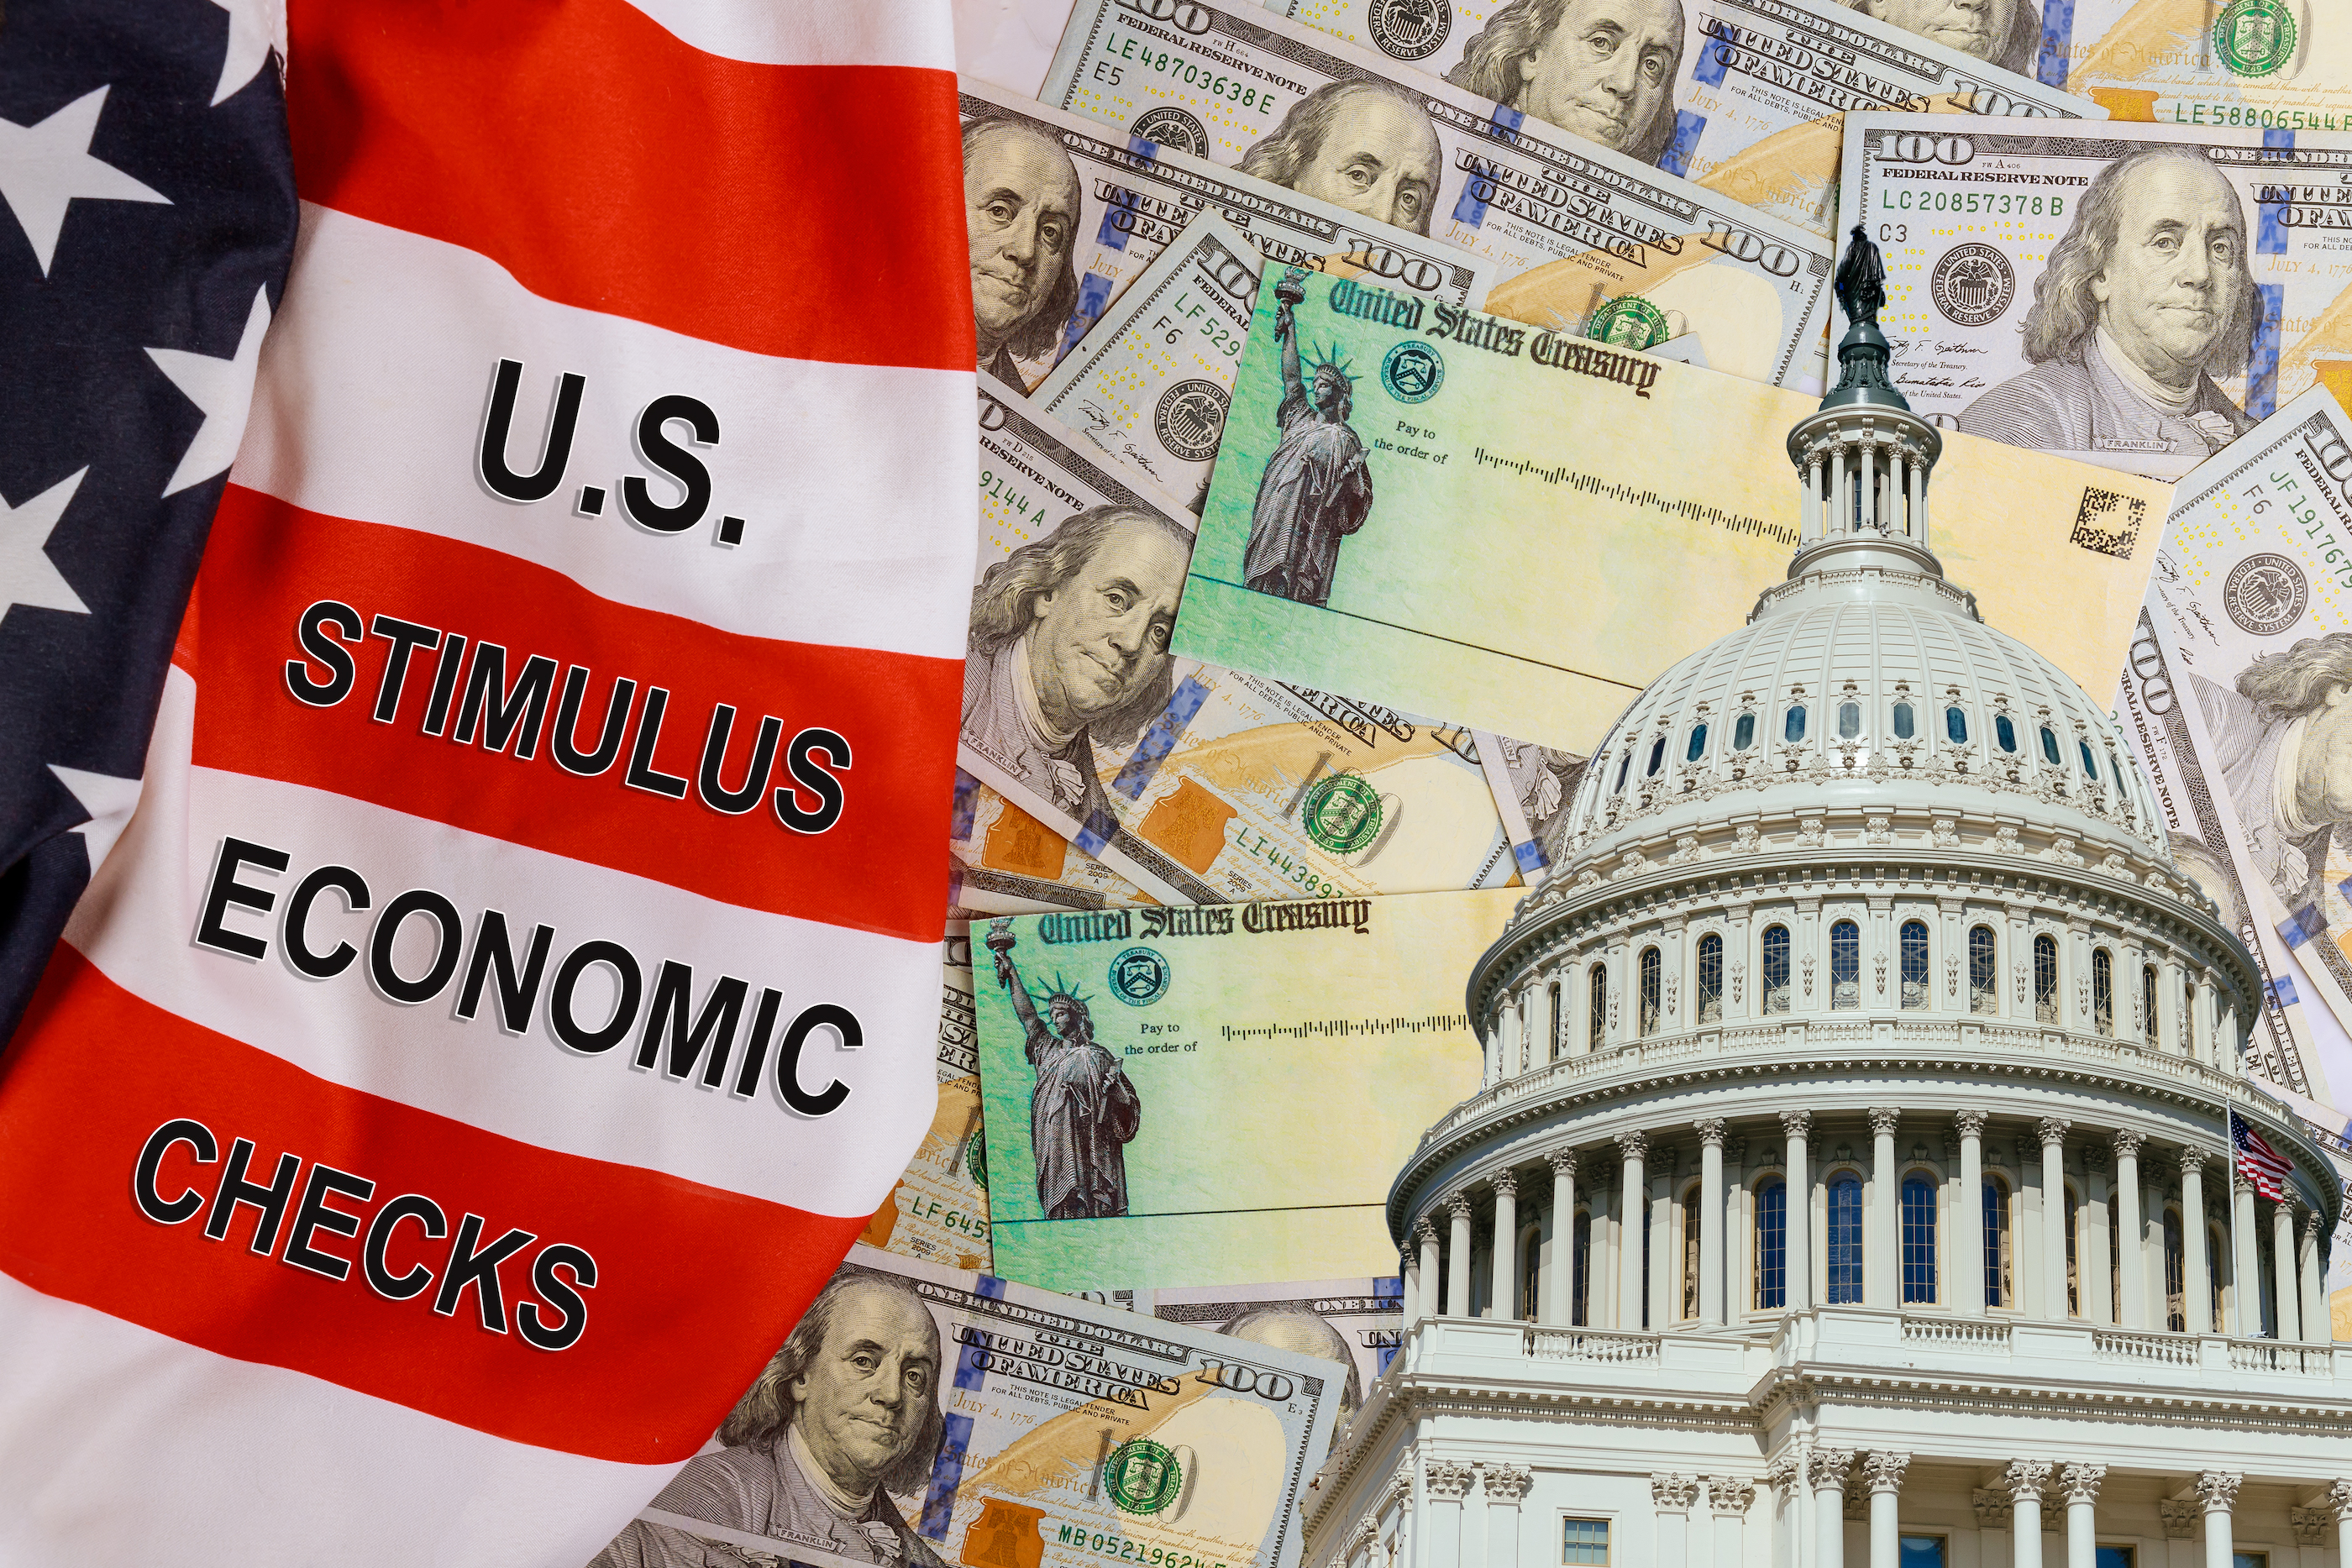 Round 2 Stimulus Checks An Update On Where Things Stand On Possible Checks Payments From Irs Fortune